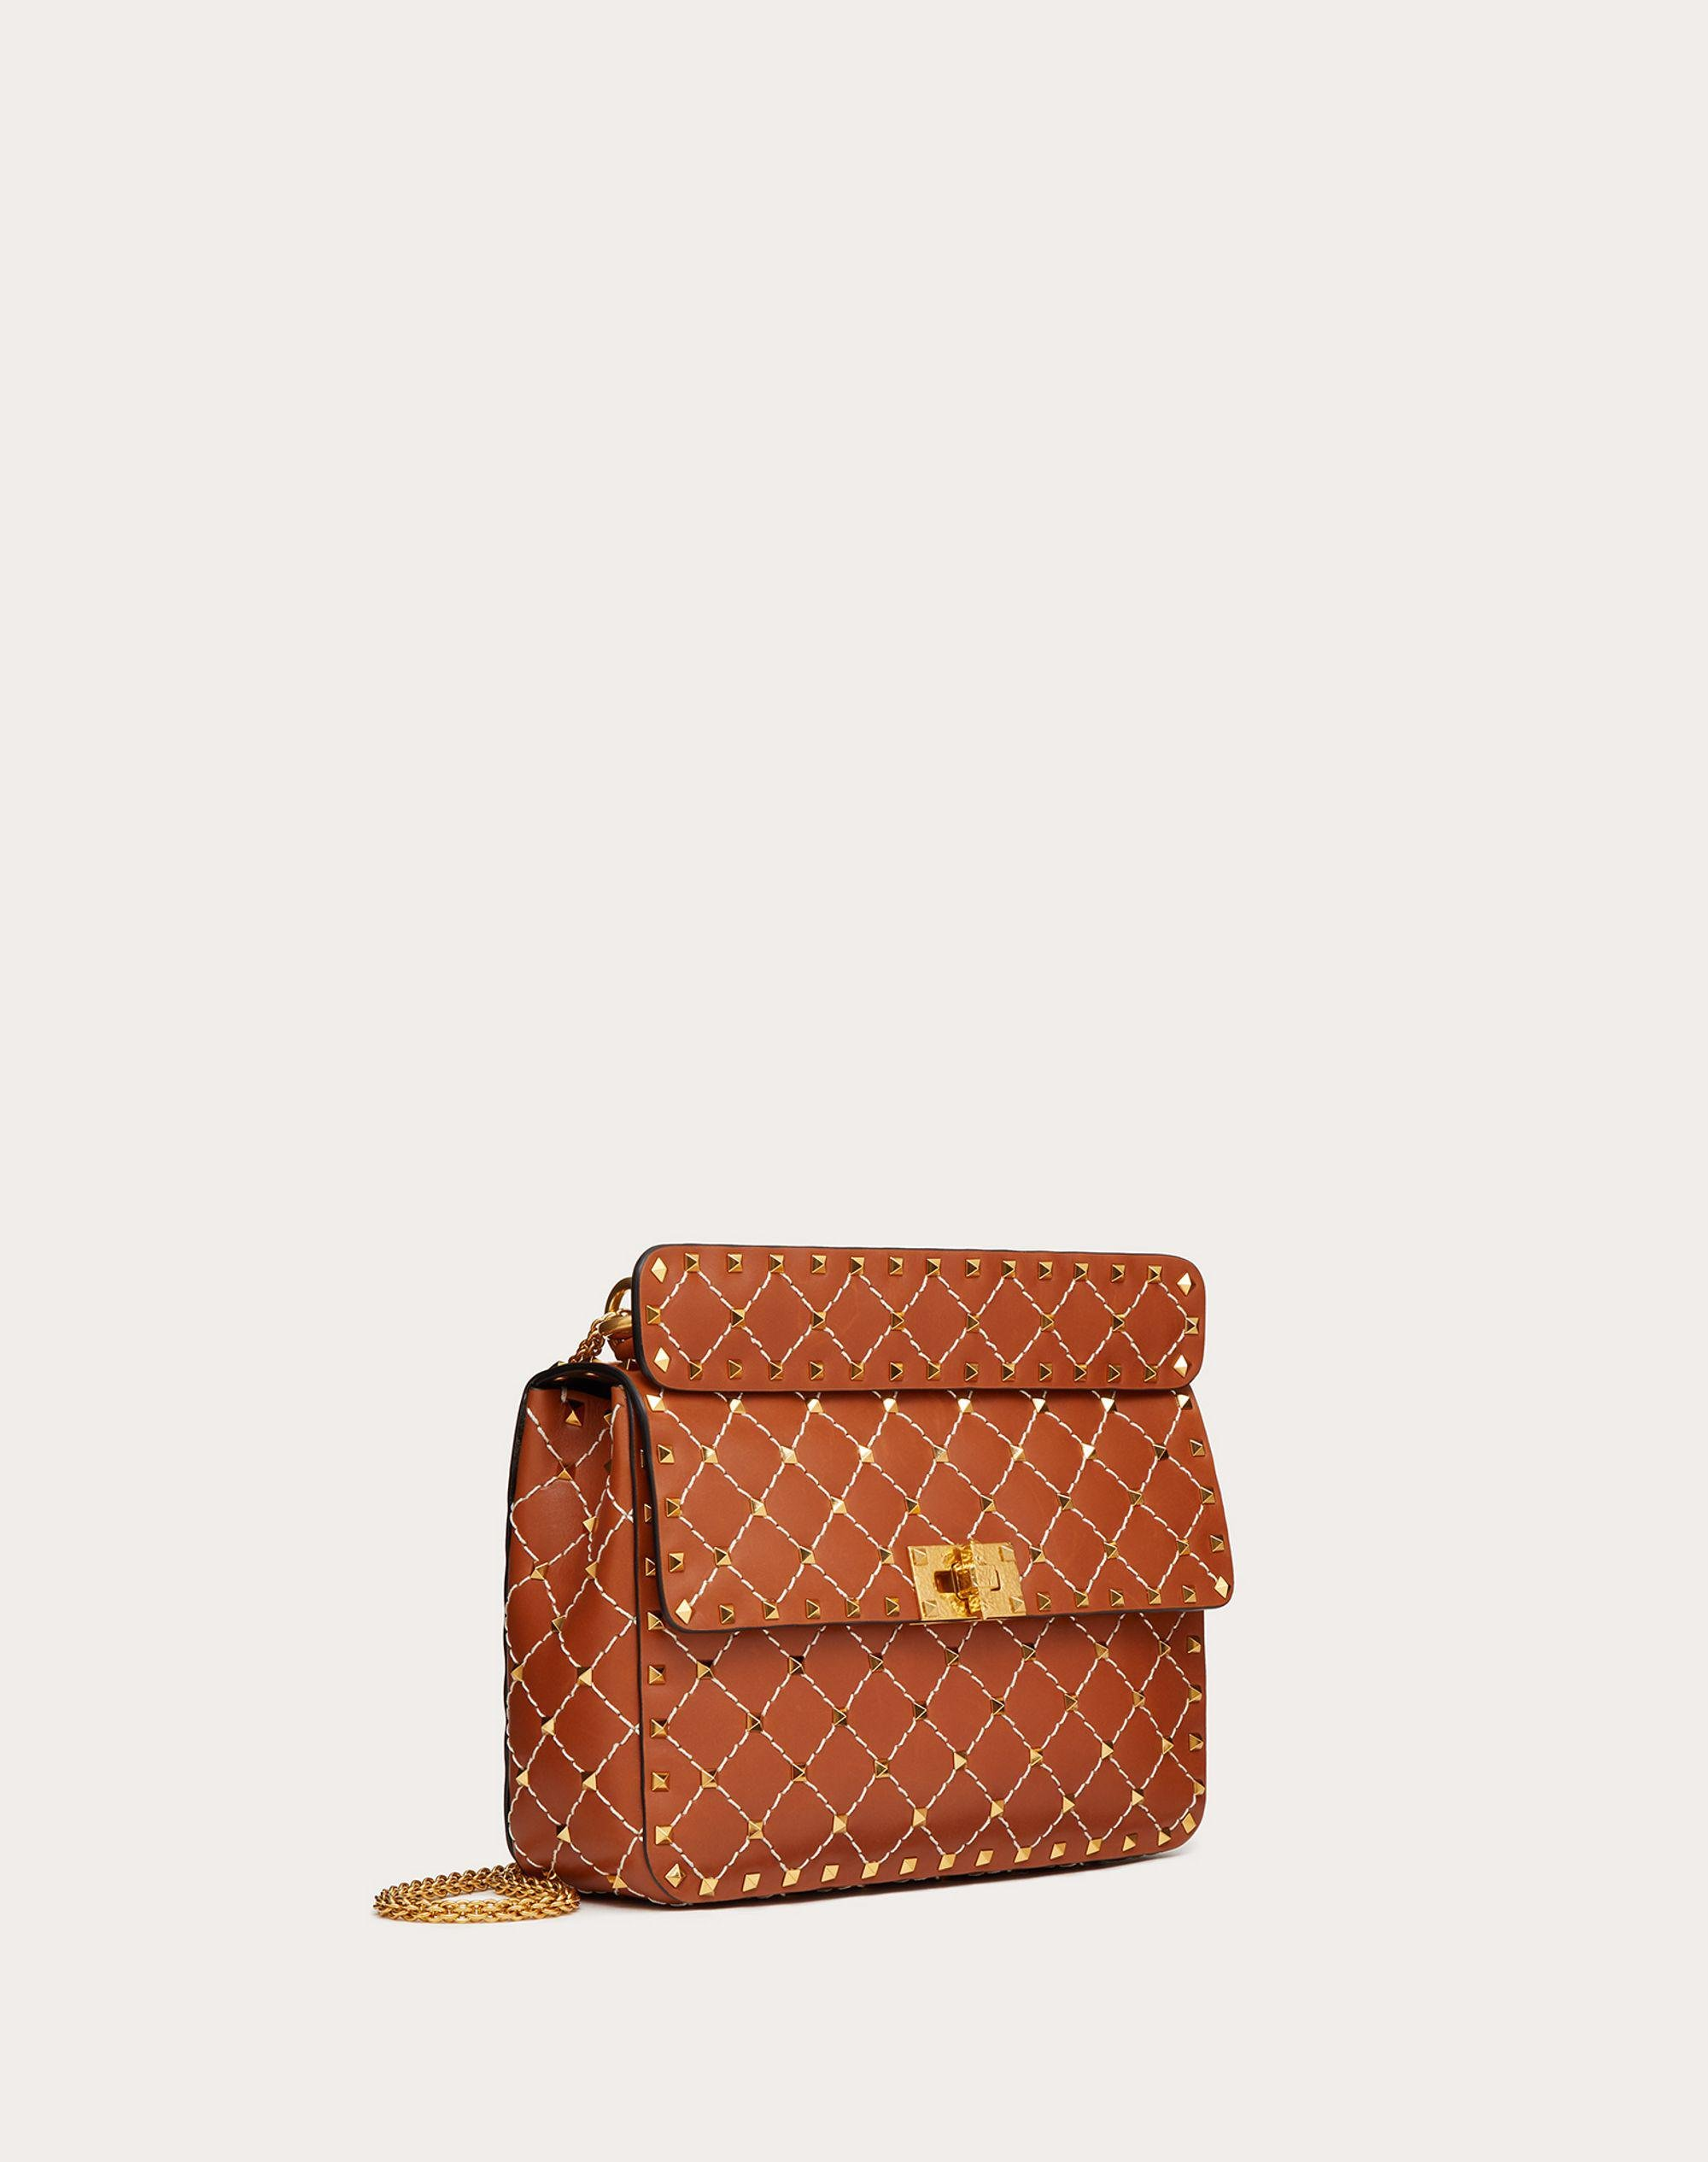 Medium Spike.It Nappa Bag with Leather Grid Detailing 1